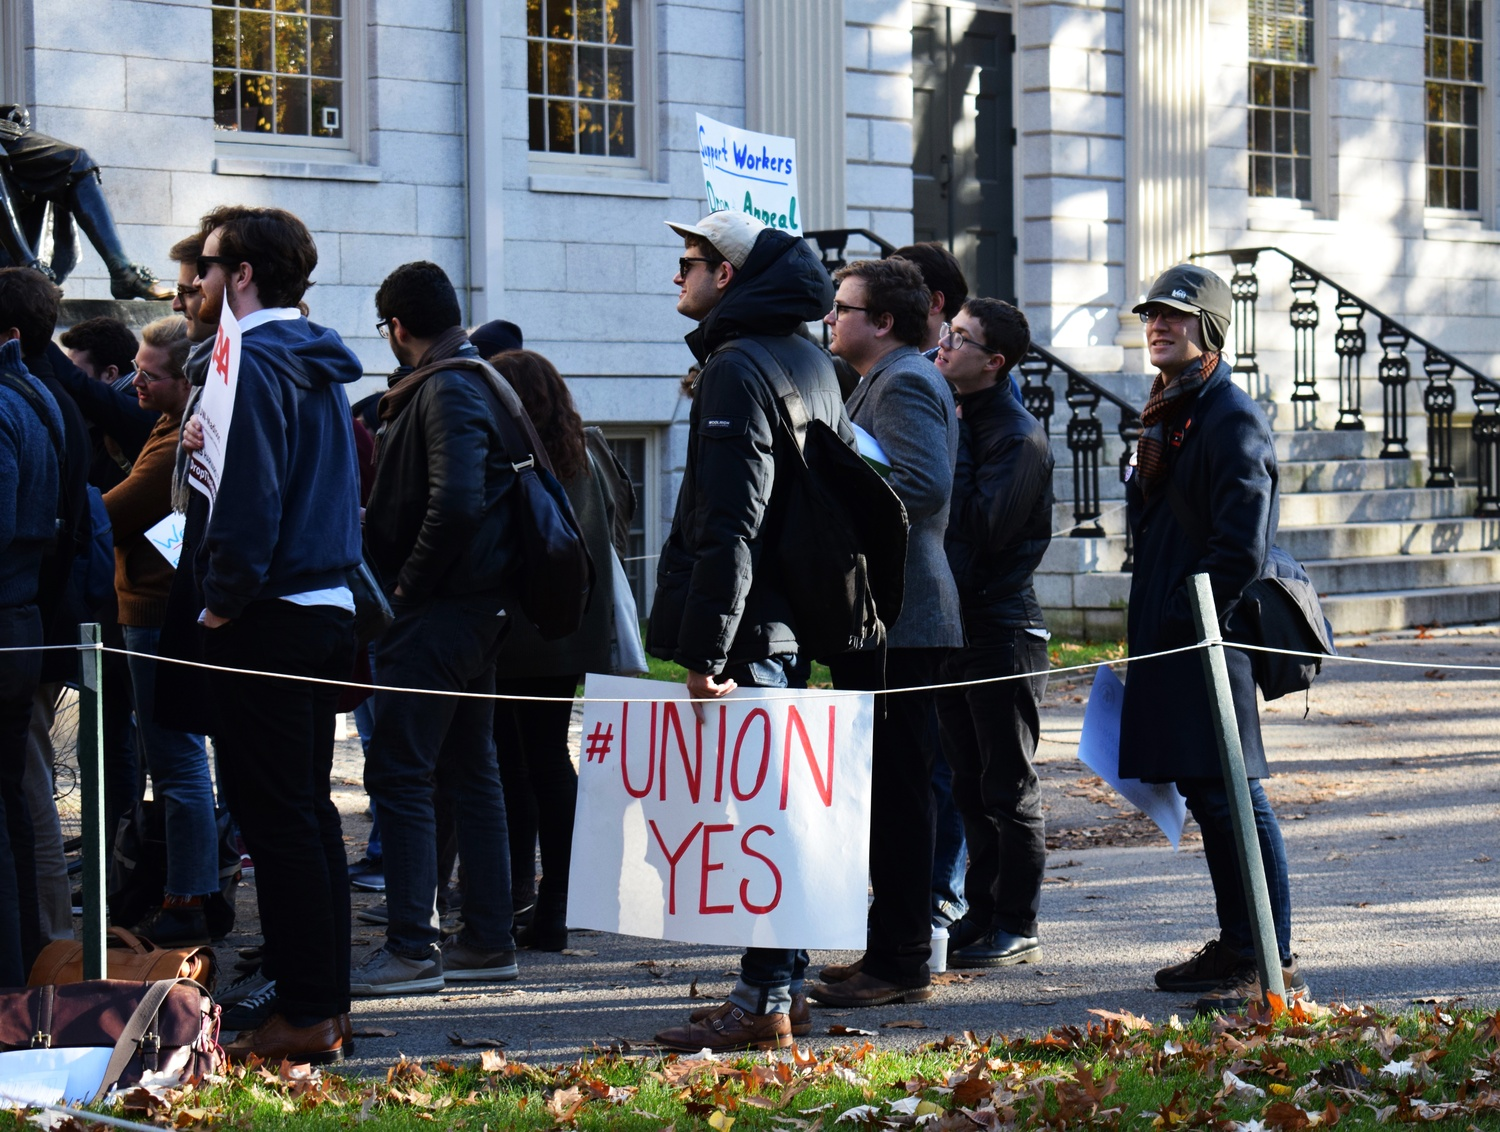 Graduate students involved in the unionization effort held a rally in 2017.